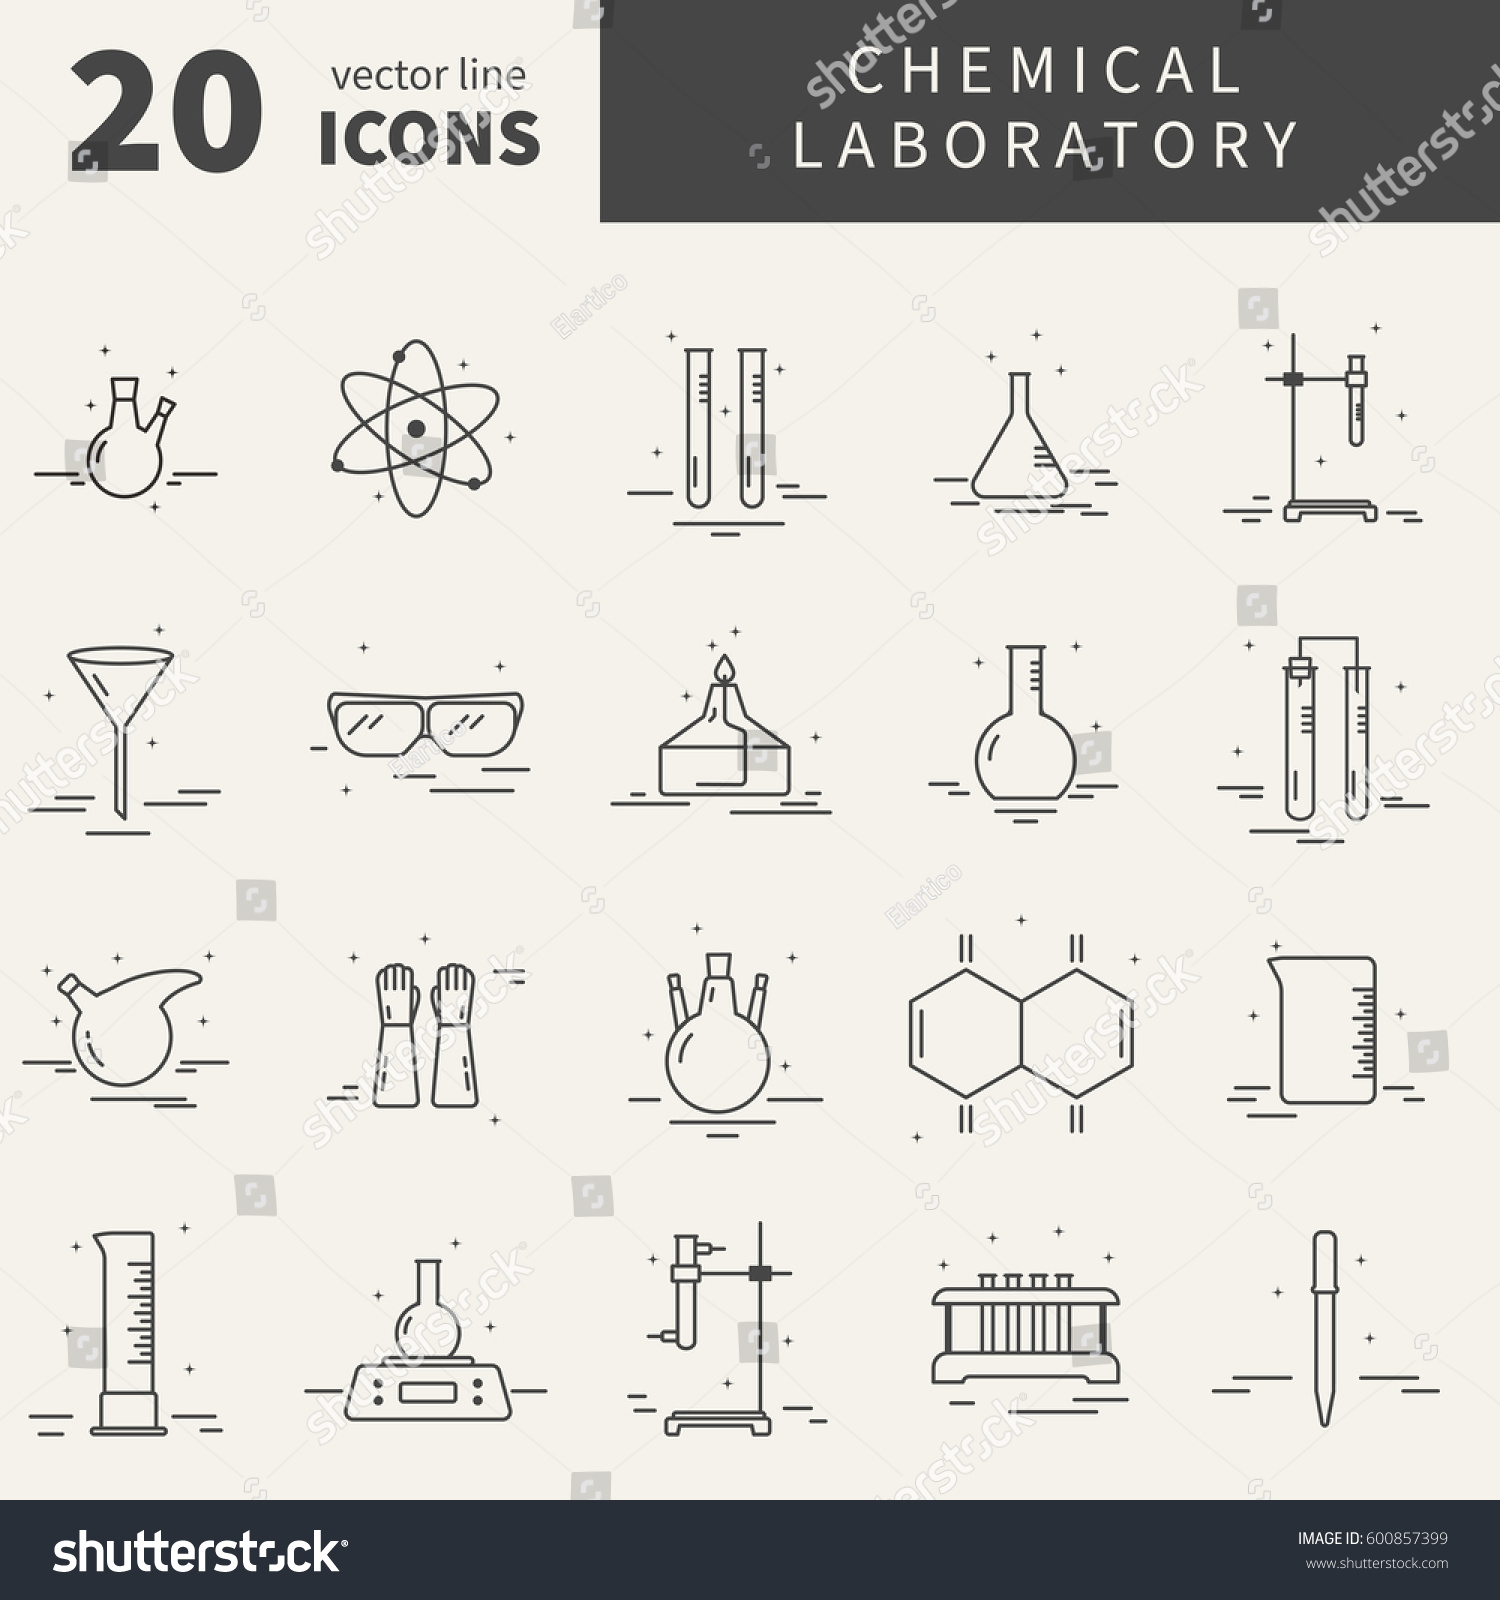 Collection line vector icons different symbols stock vector collection of line vector icons with different symbols of chemical laboratory equipment graphic design elements buycottarizona